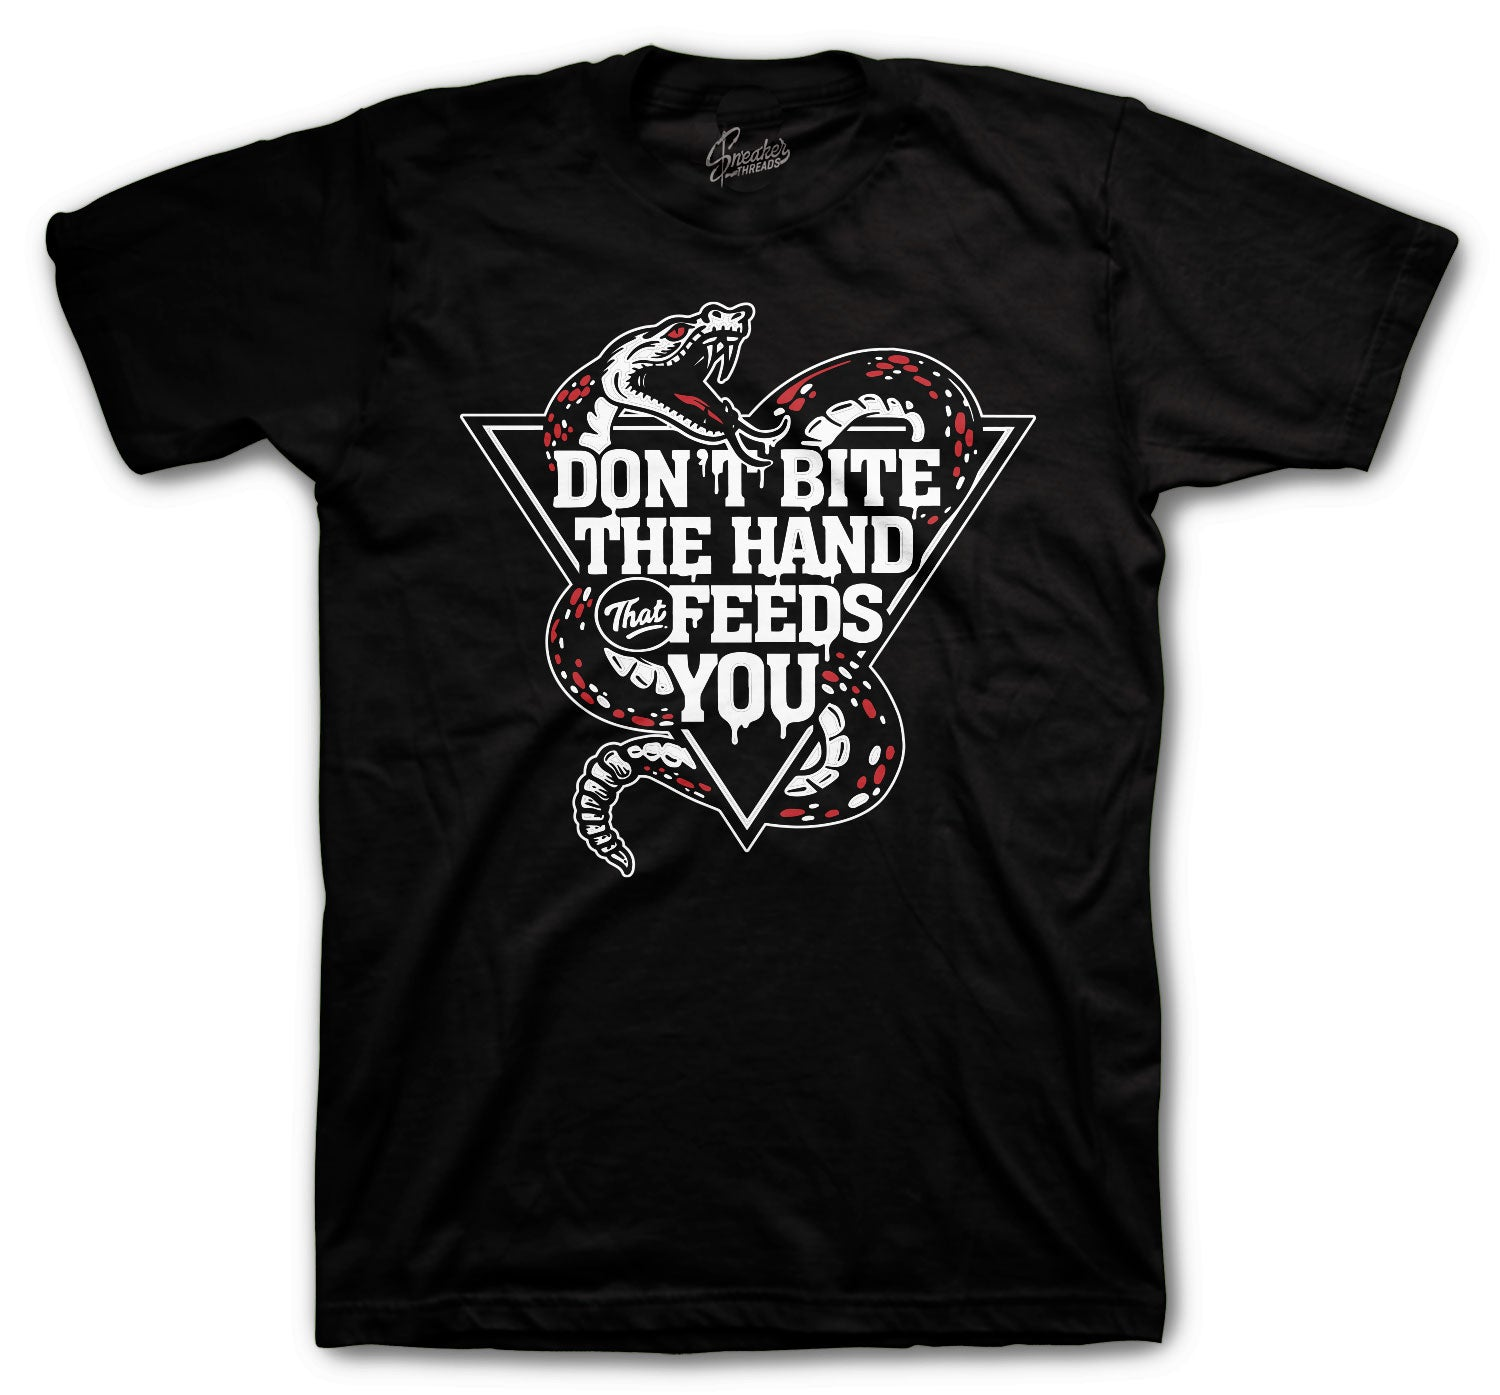 Jordan 1 Satin Snake Don't Bite Shirt